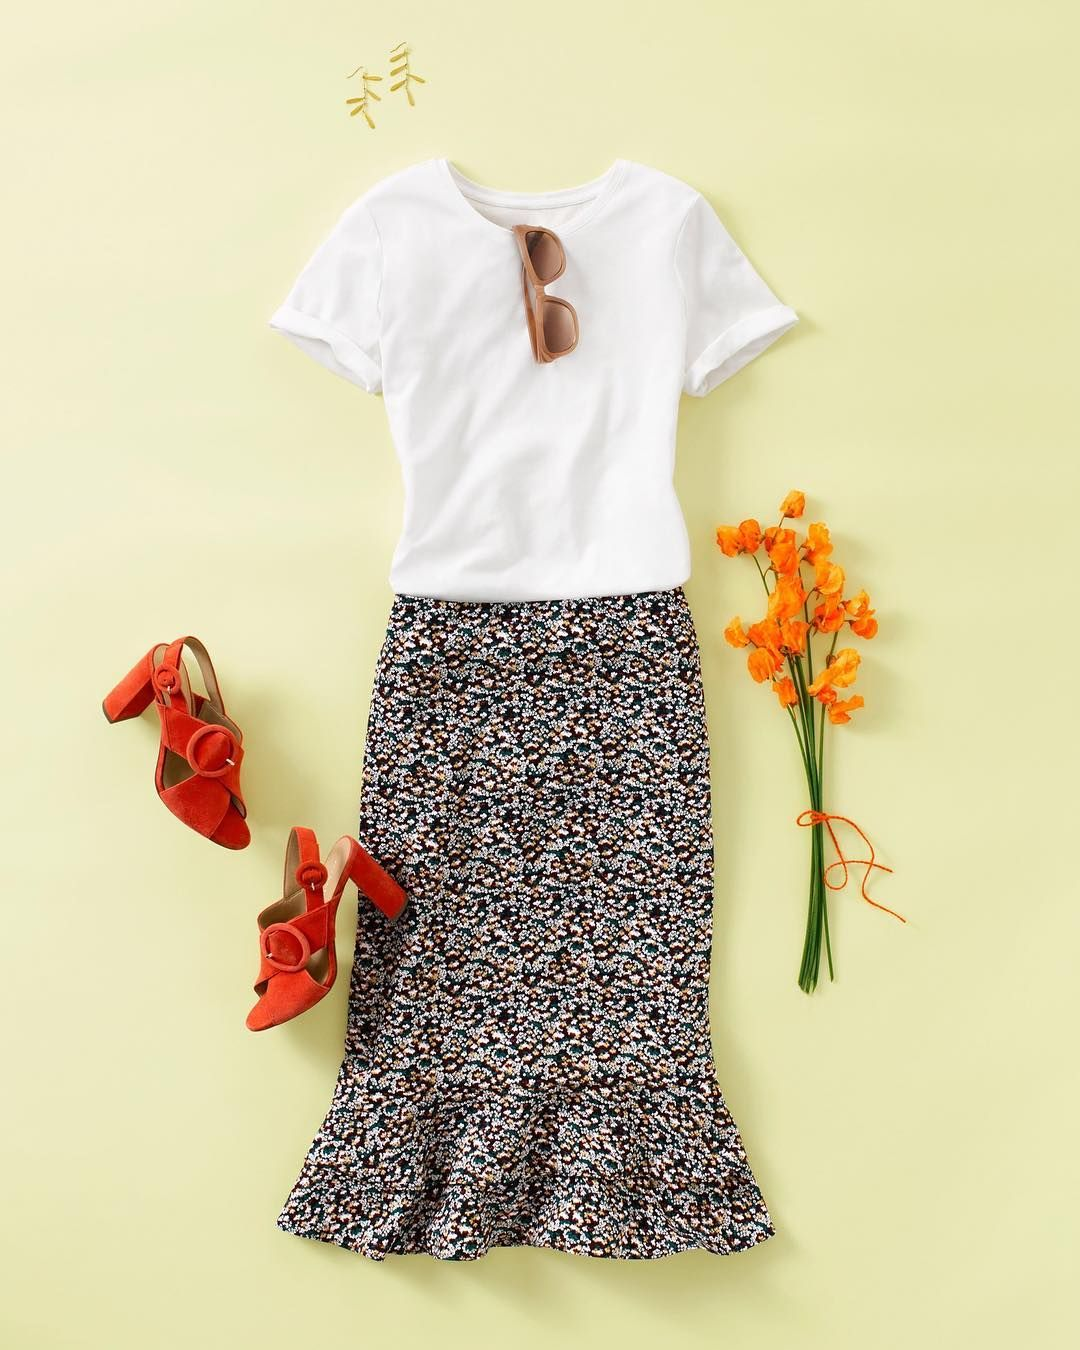 82825a6f1c6894 AT Floral Ruffle Pencil Skirt, White Tee | Spring 2018 | Ann Taylor ...